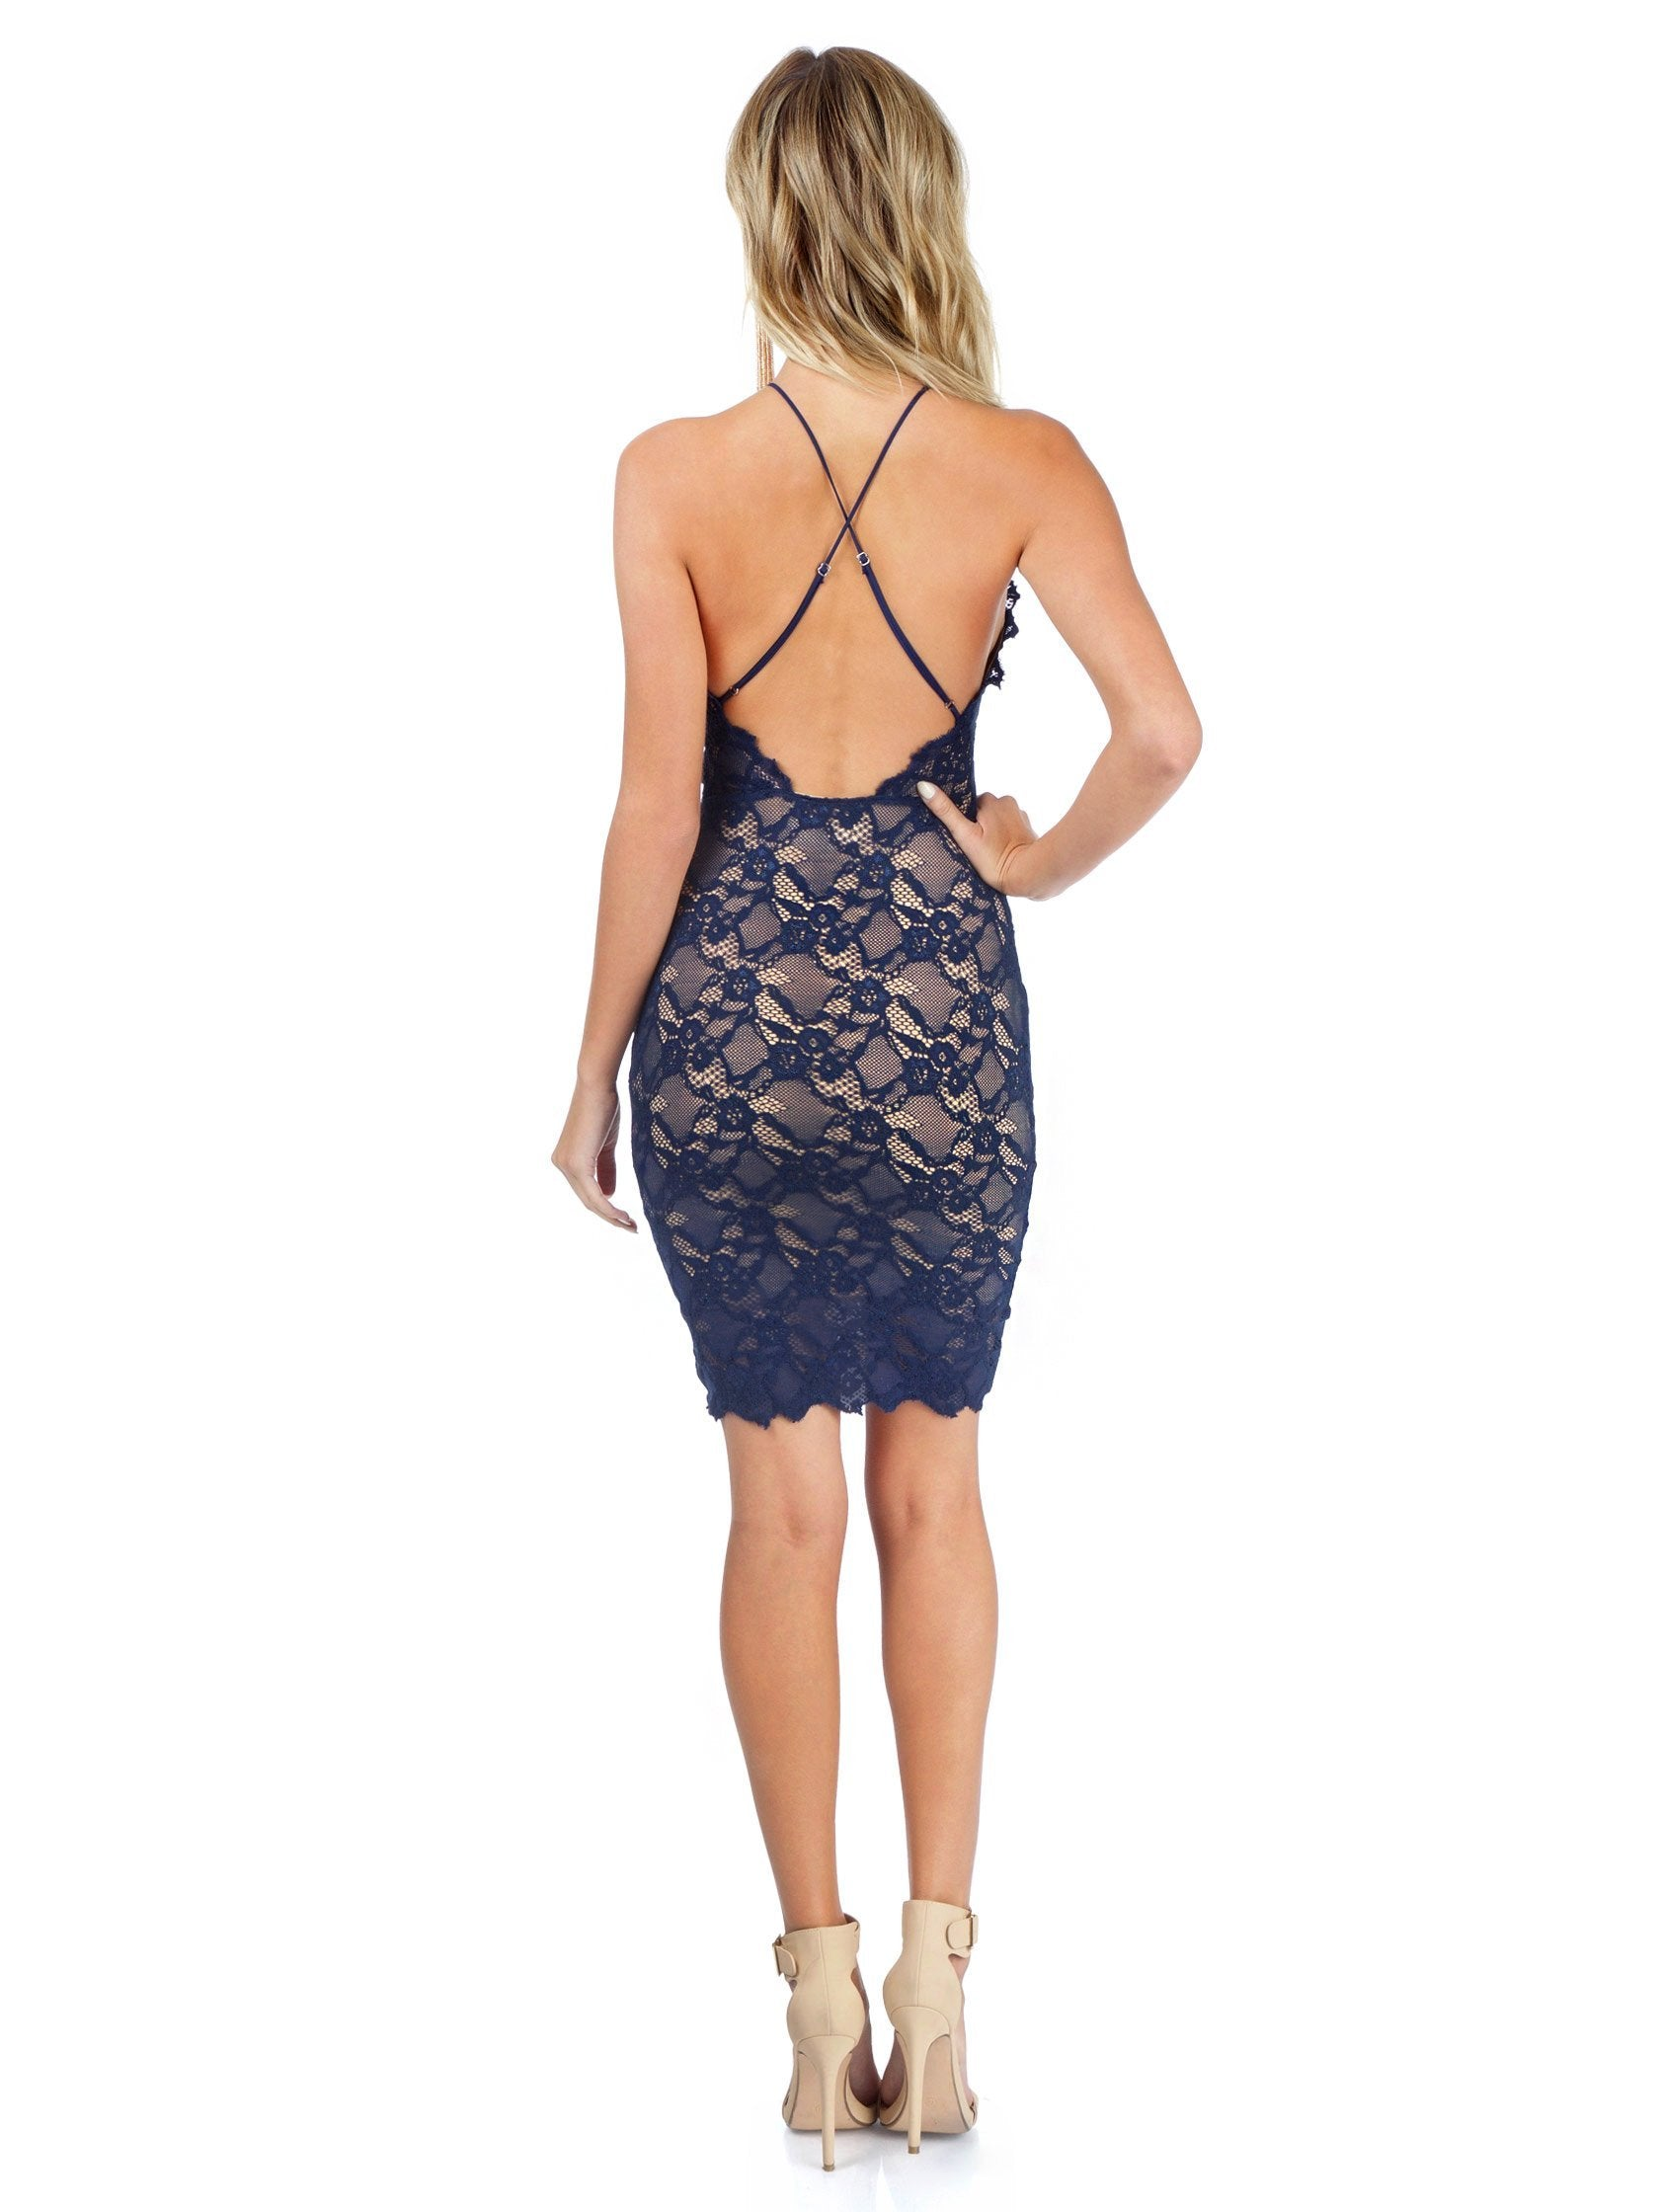 Women wearing a dress rental from Nightcap Clothing called Navy Drive Me Home Mini Dress